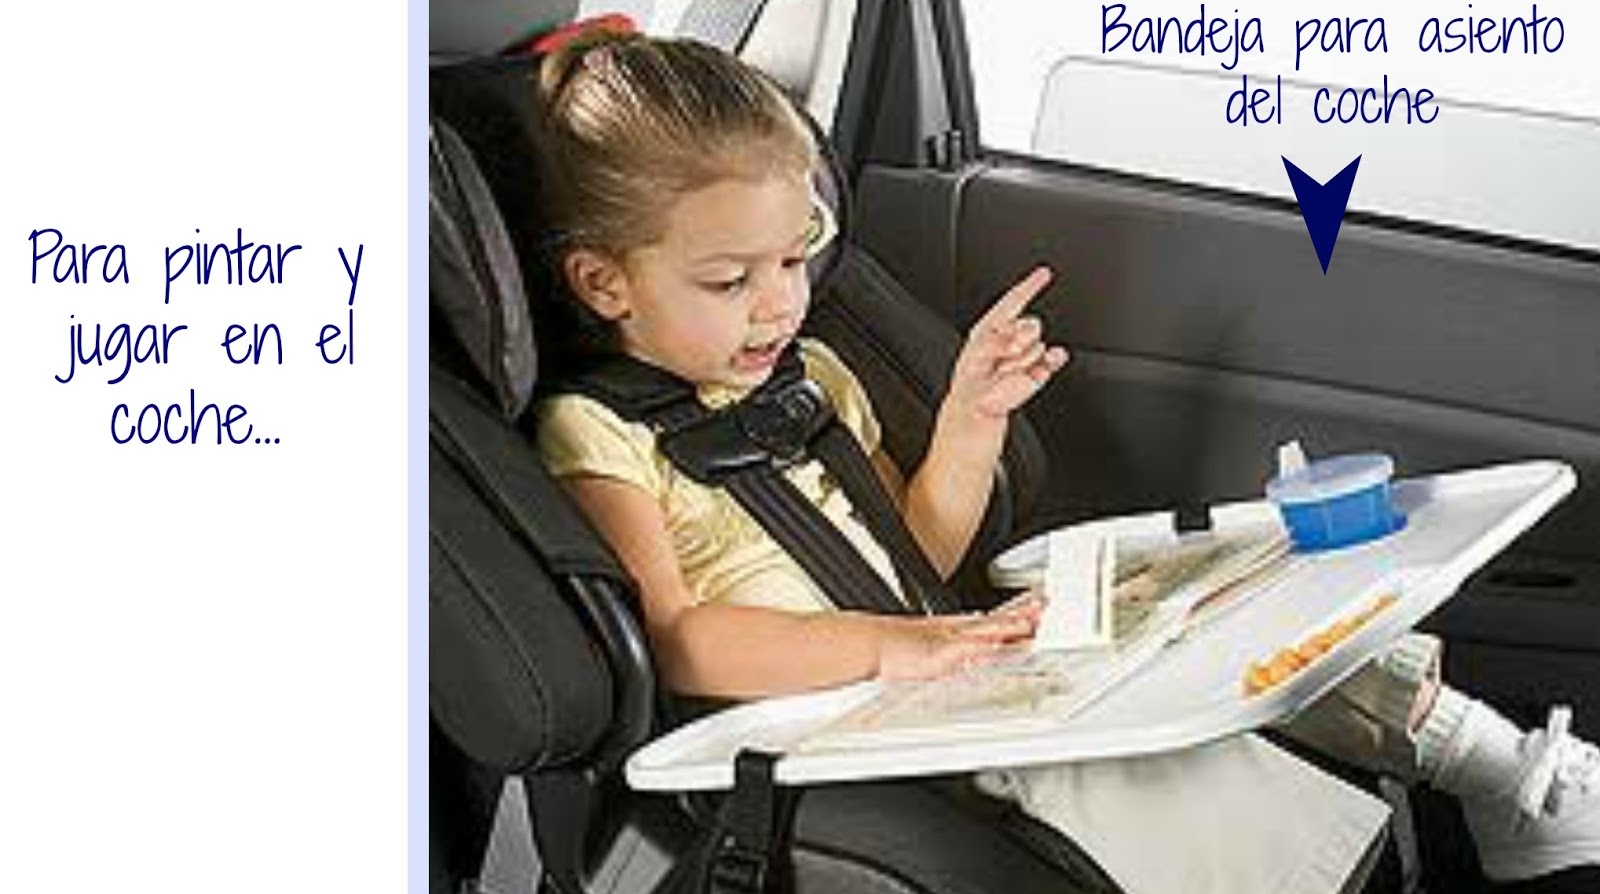 Viajar con ni os travel with kids m s alla del rosa o azul for Sillas coche para ninos 8 anos